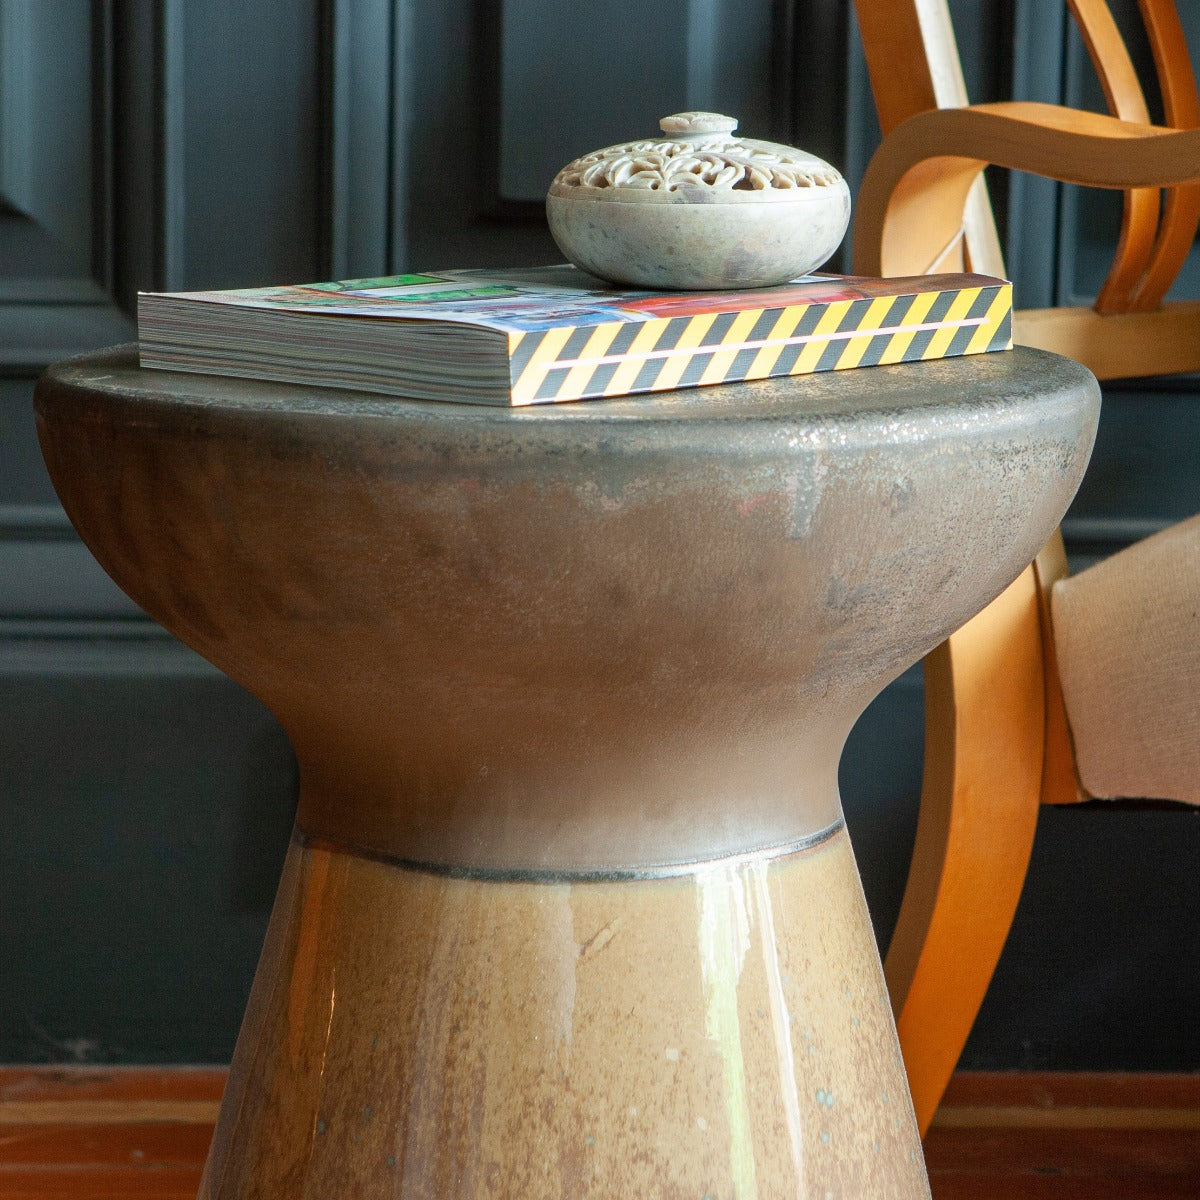 STONE SIDE TABLE / STOOL I am Nomad